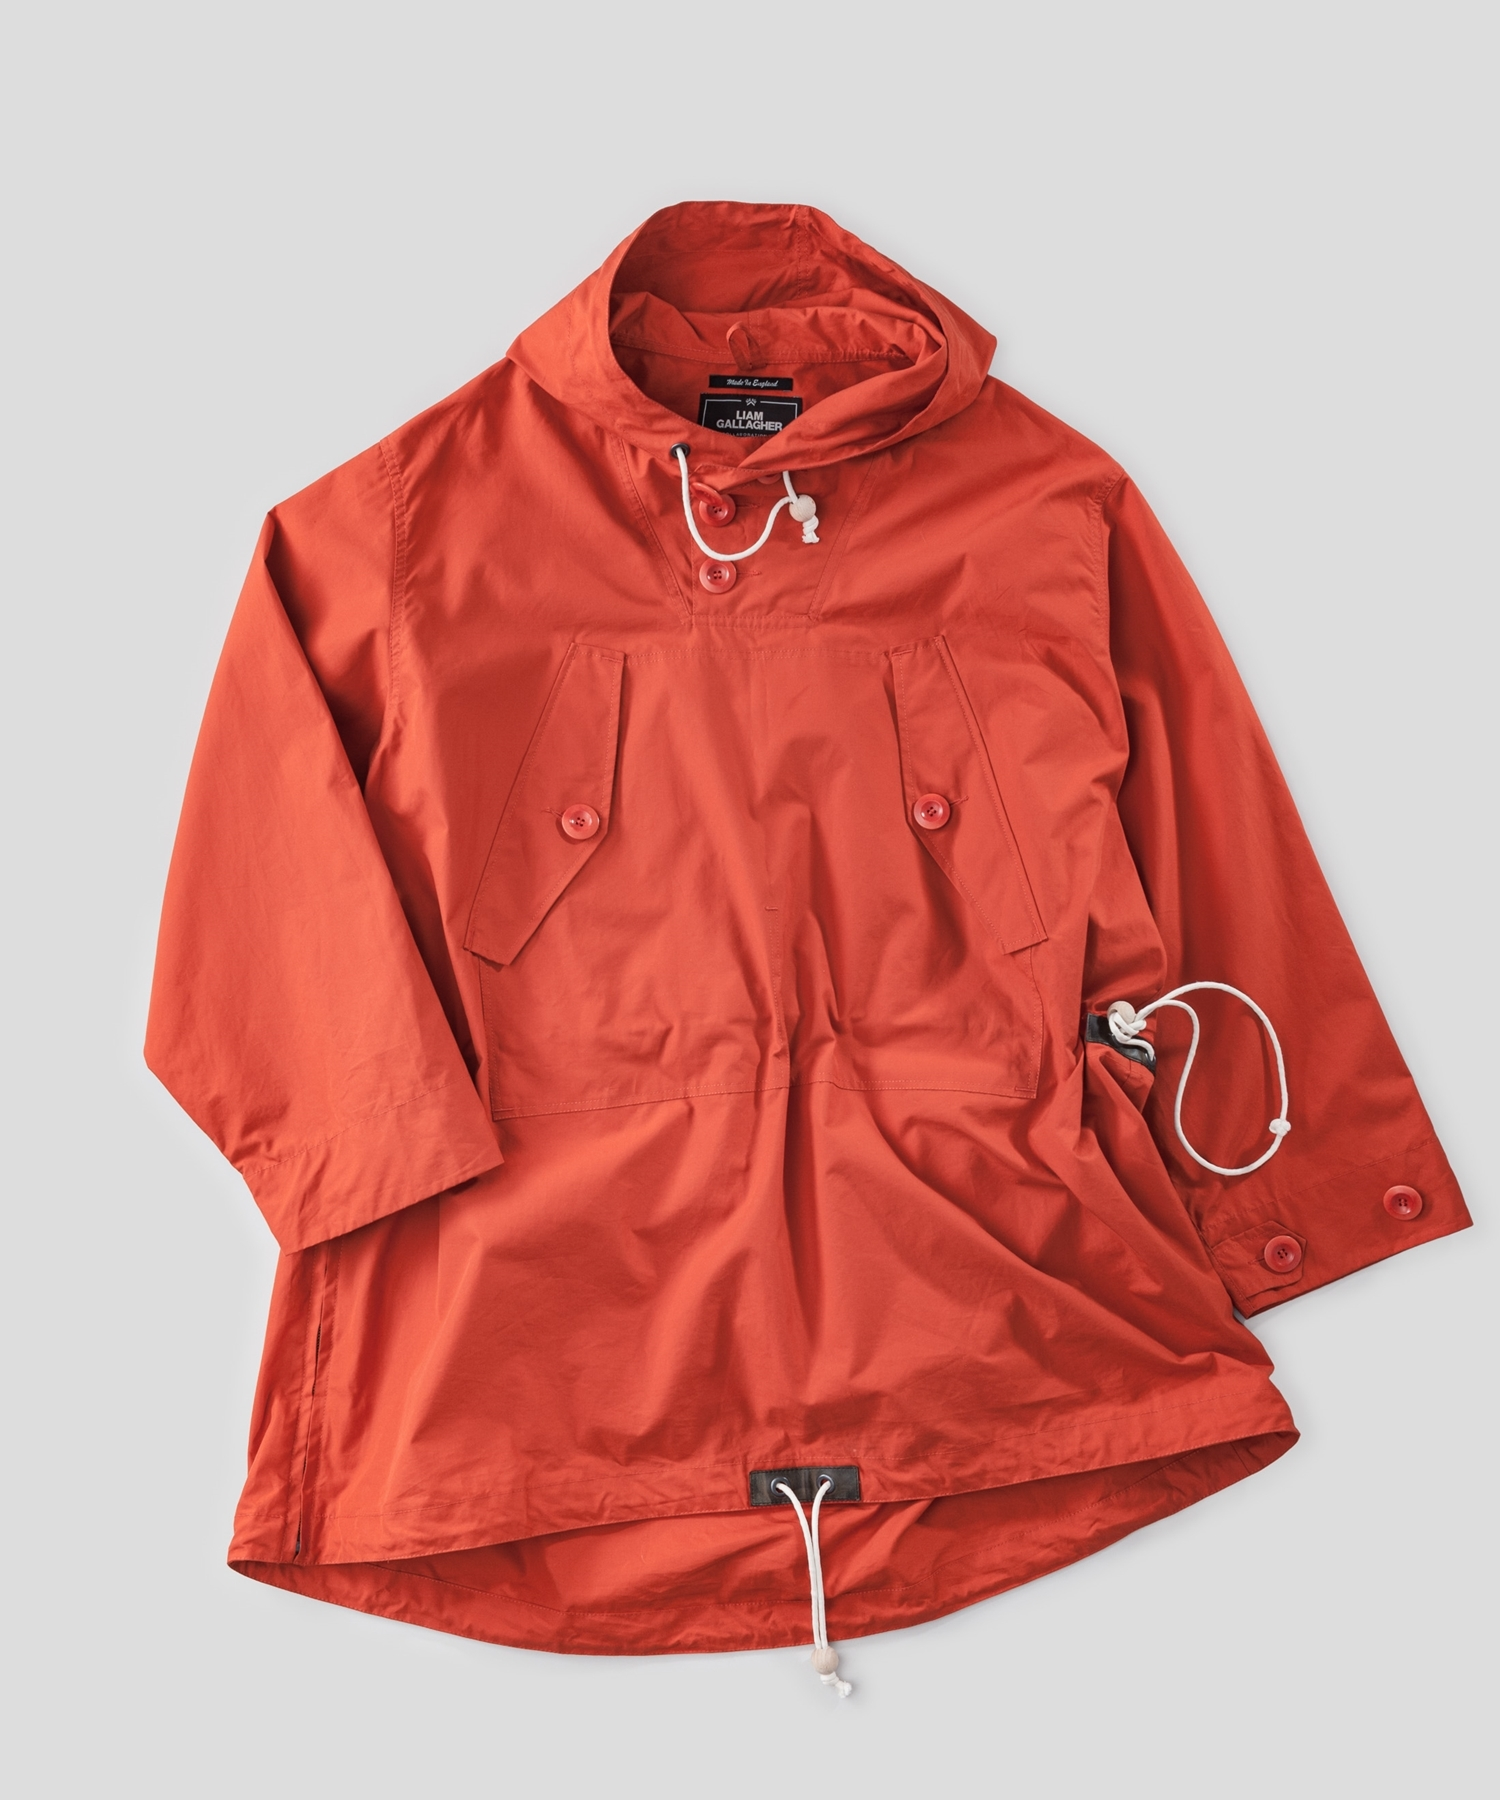 Nigel Cabourn × Liam Gallagher ロングスモック/ LONG SMOCK